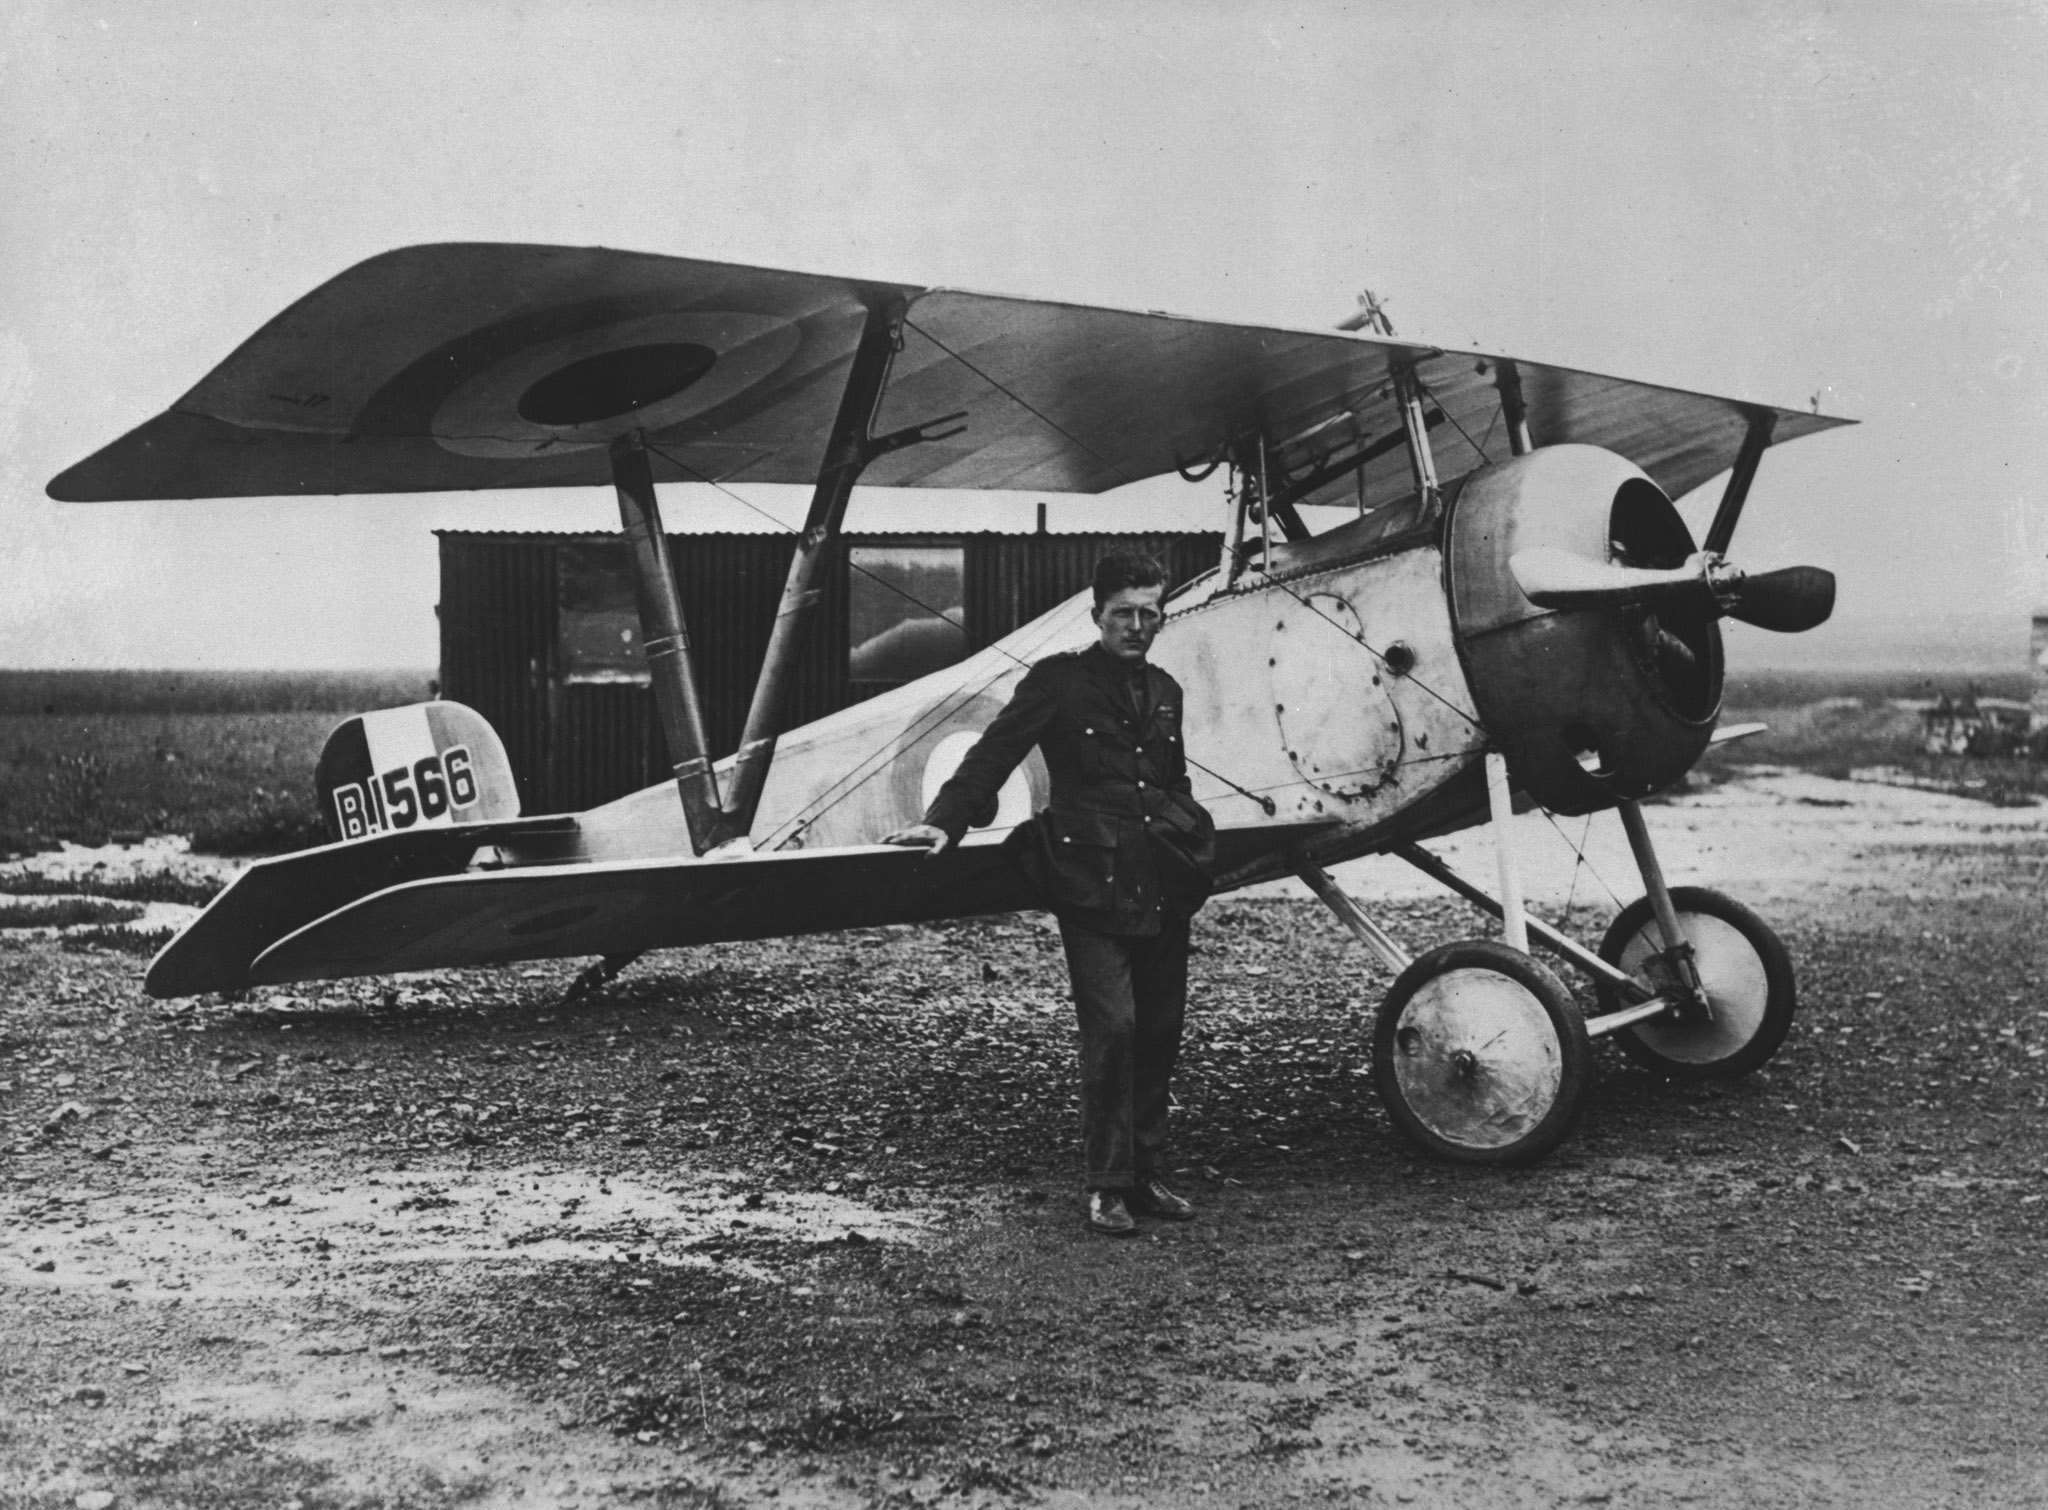 "Captain William A. ""Billy"" Bishop poses with his Nieuport Scout B1566, which he flew while with No. 60 Squadron, on August 6, 1917. PHOTO: DND Archives, AH-504"